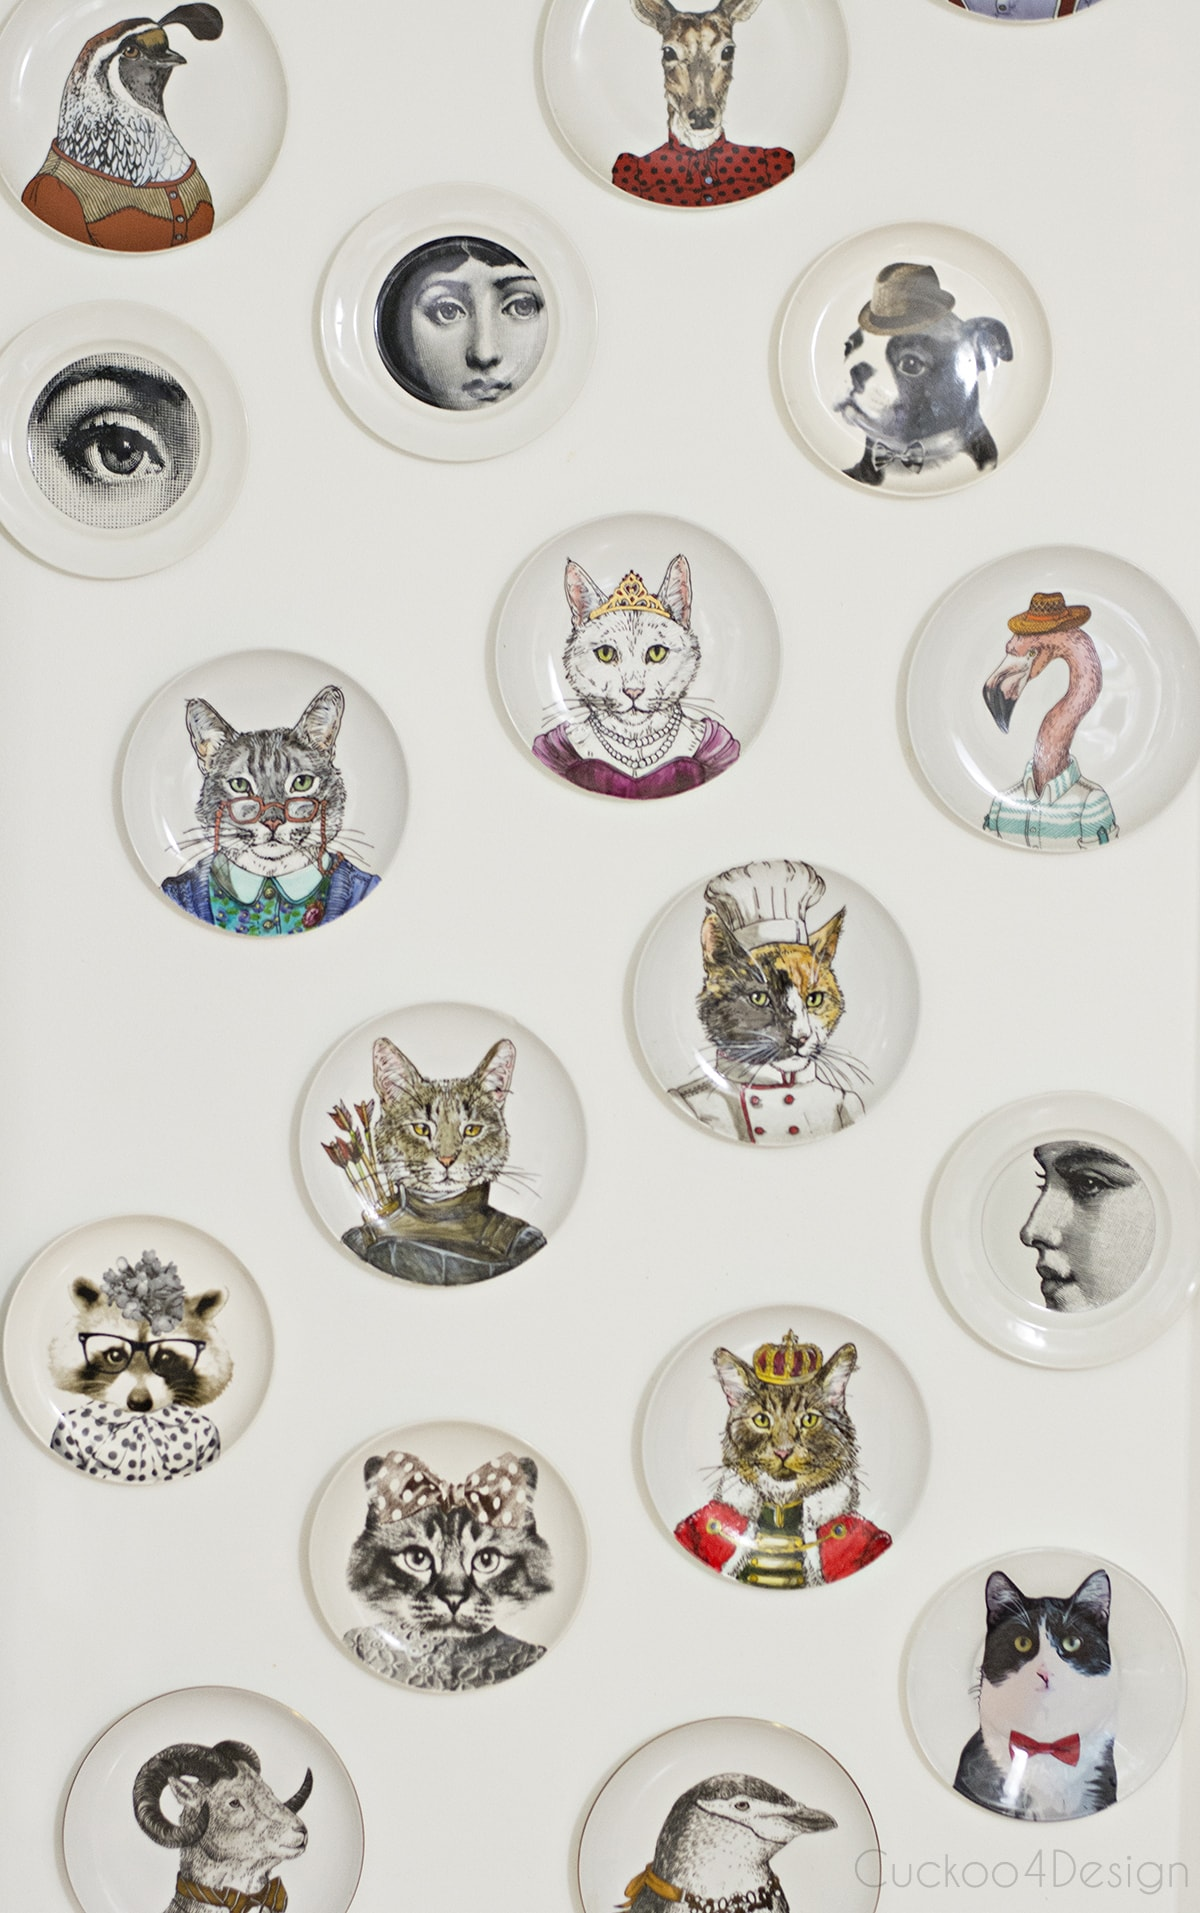 gallery wall with anthropomorphic animal plate collection